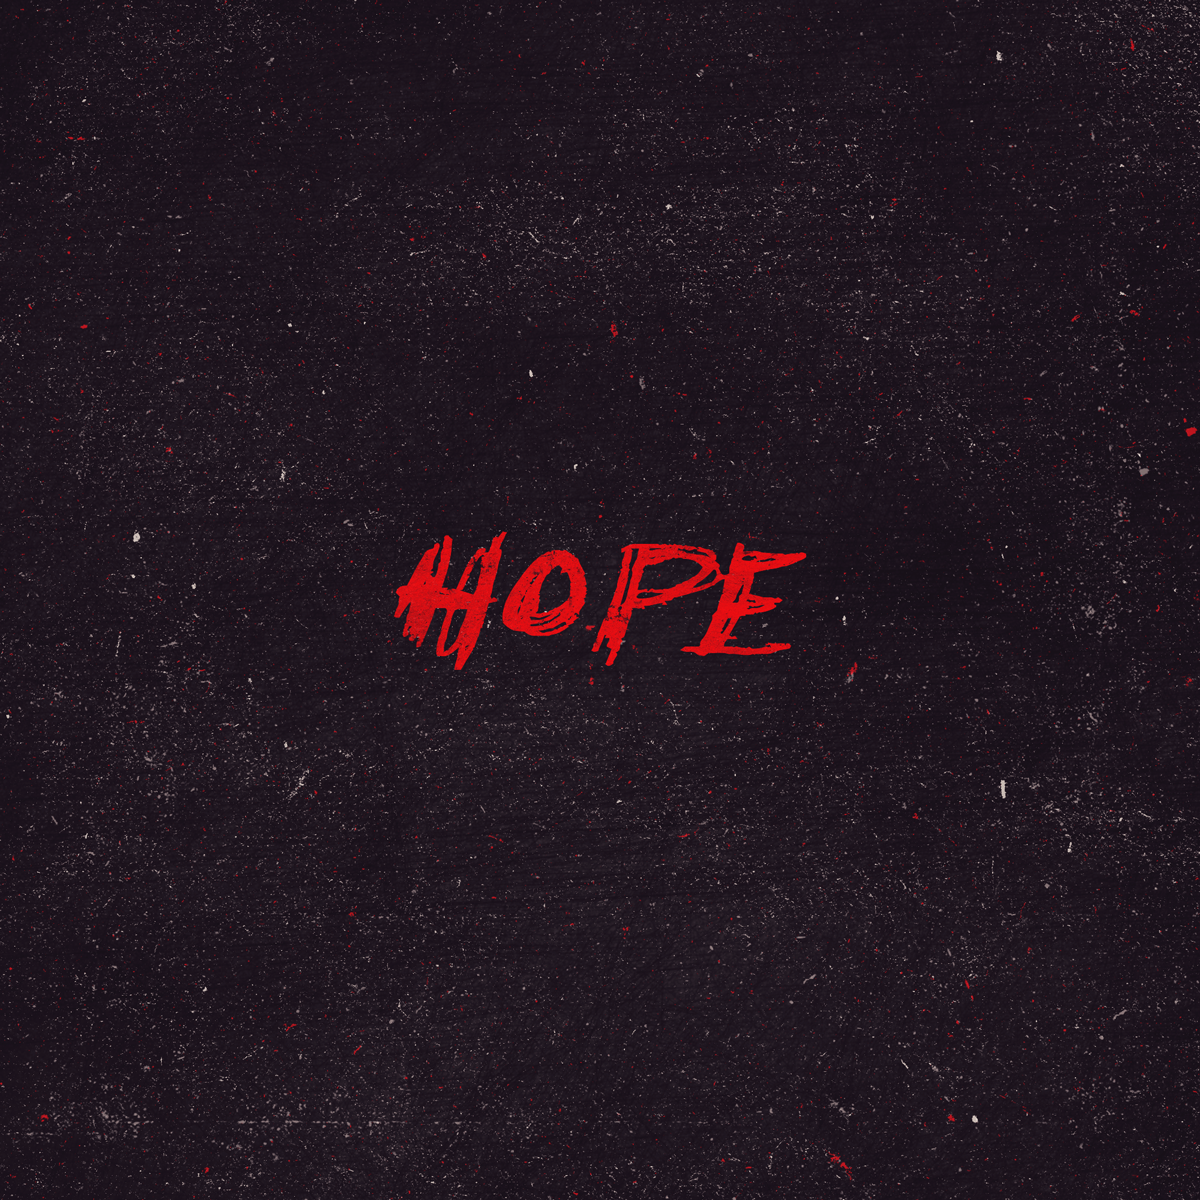 Hope-04.png